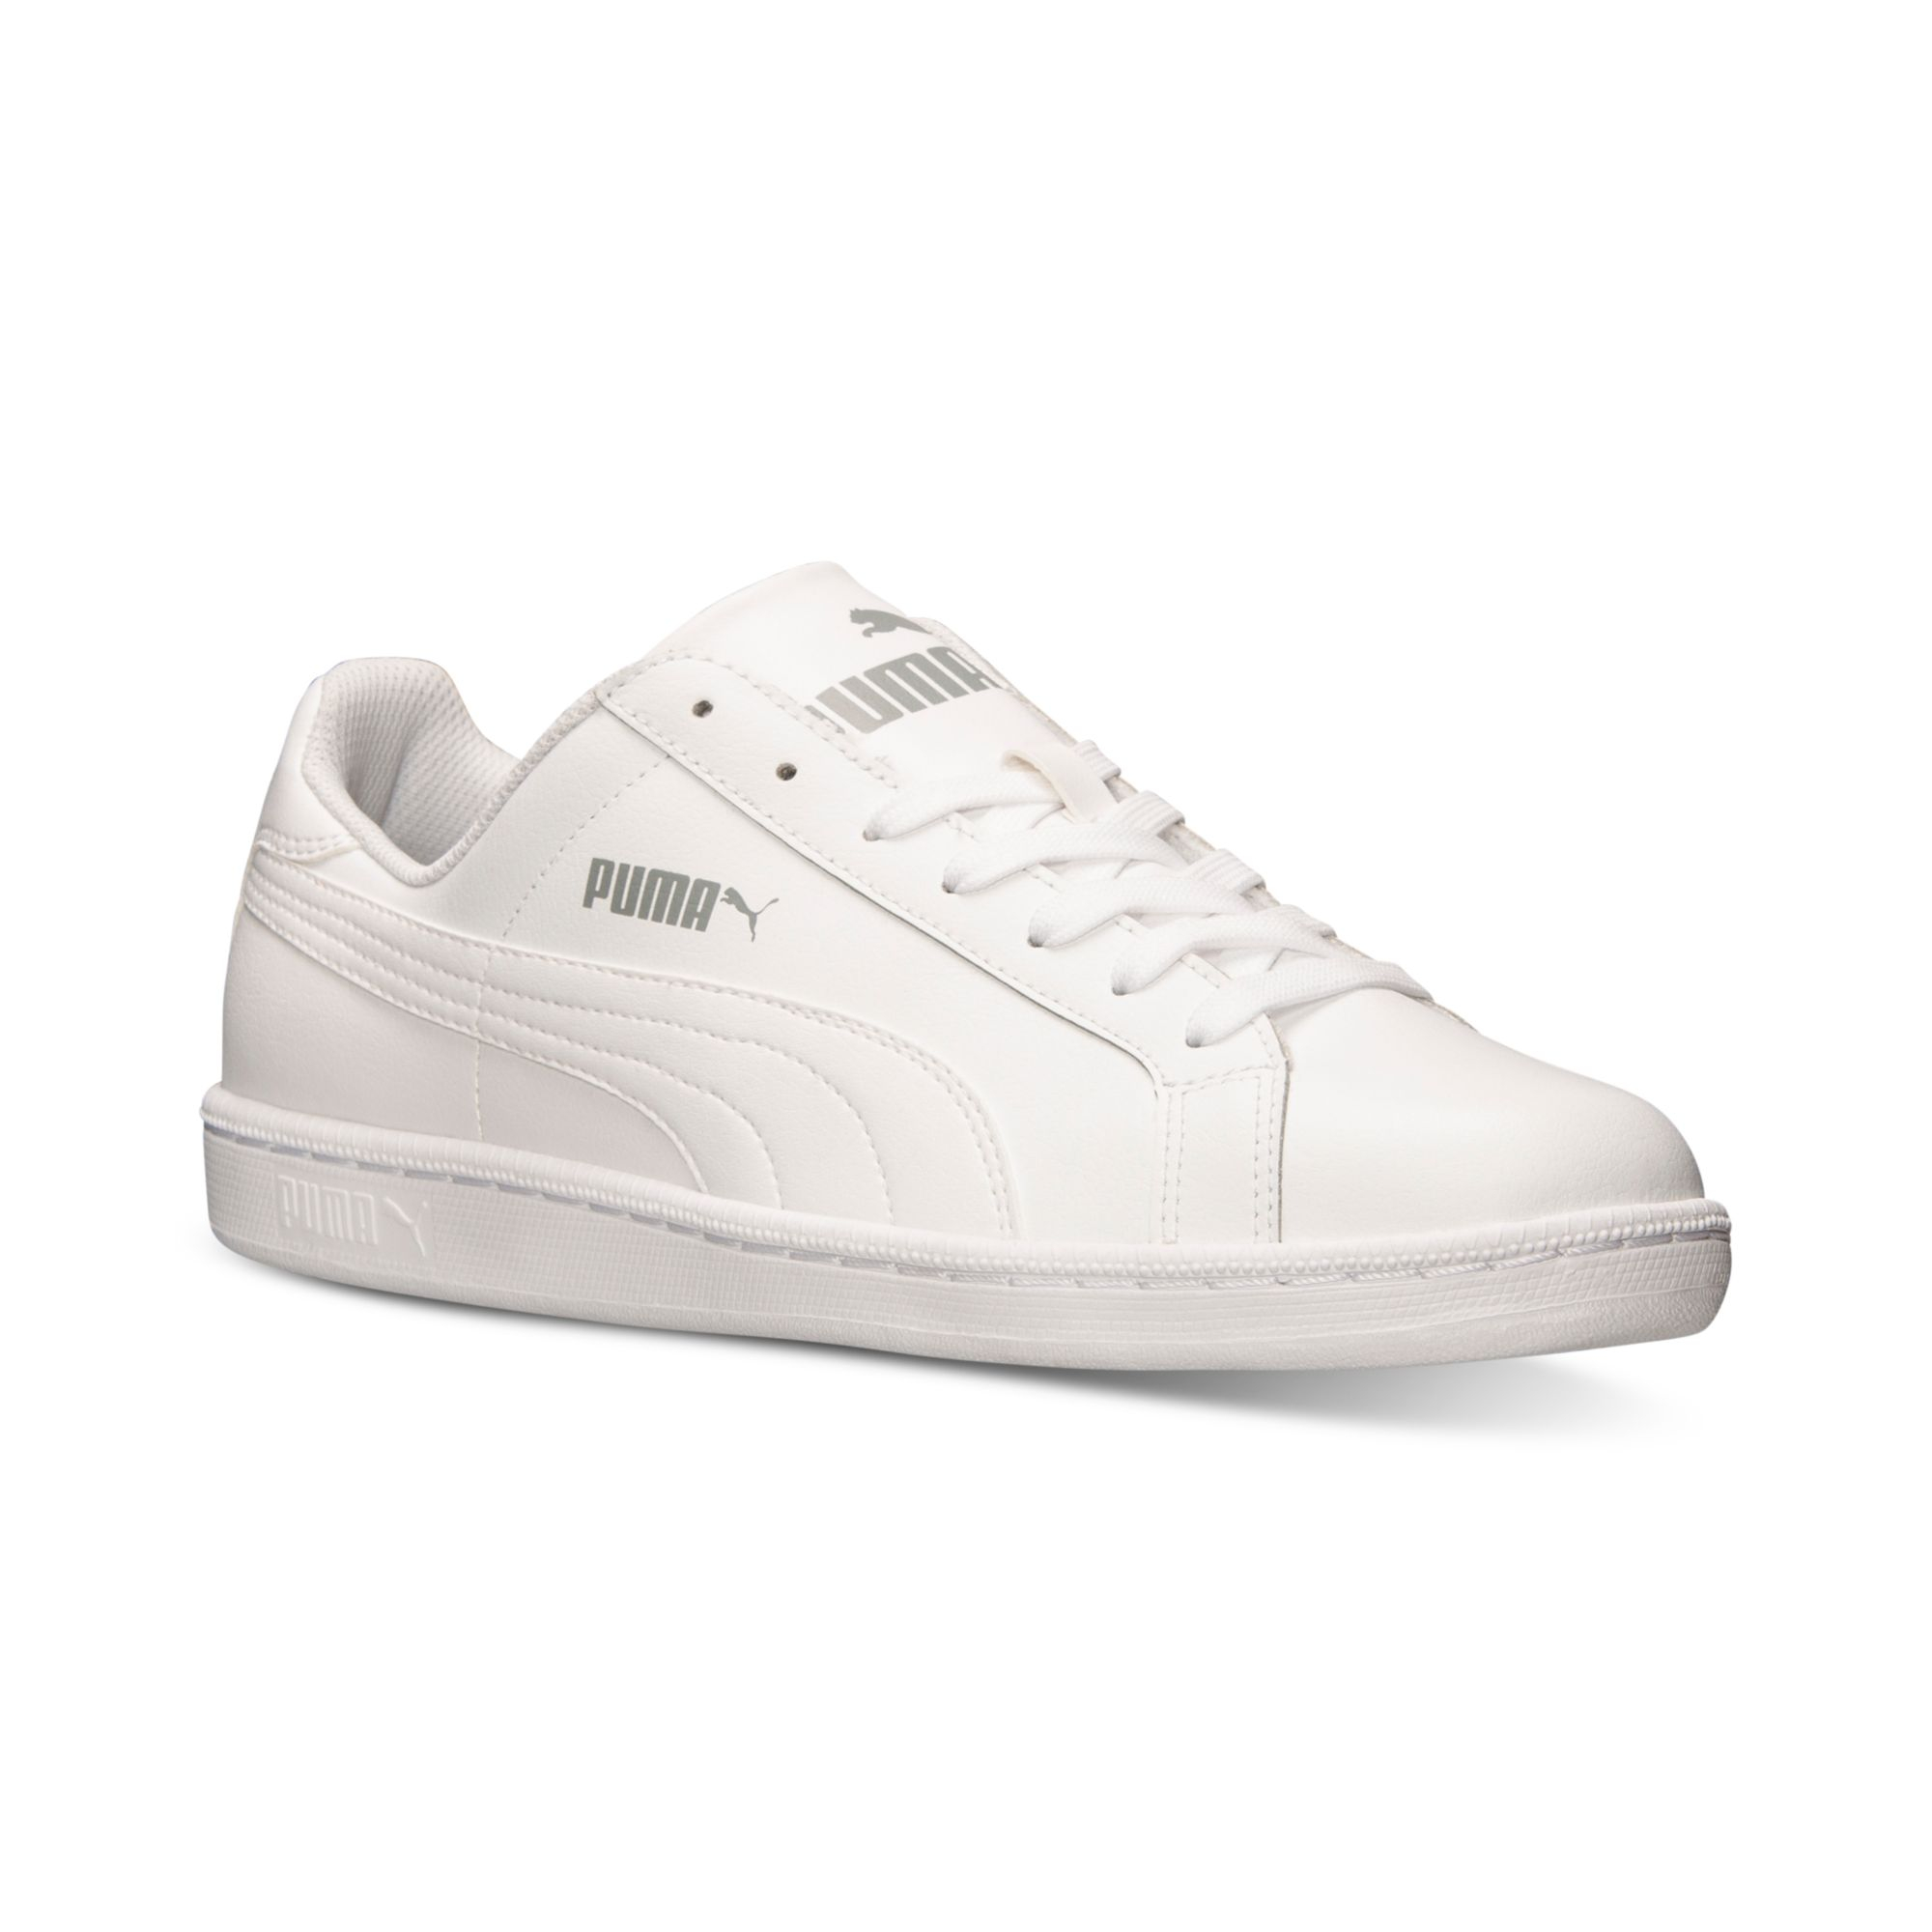 Puma Shoes White